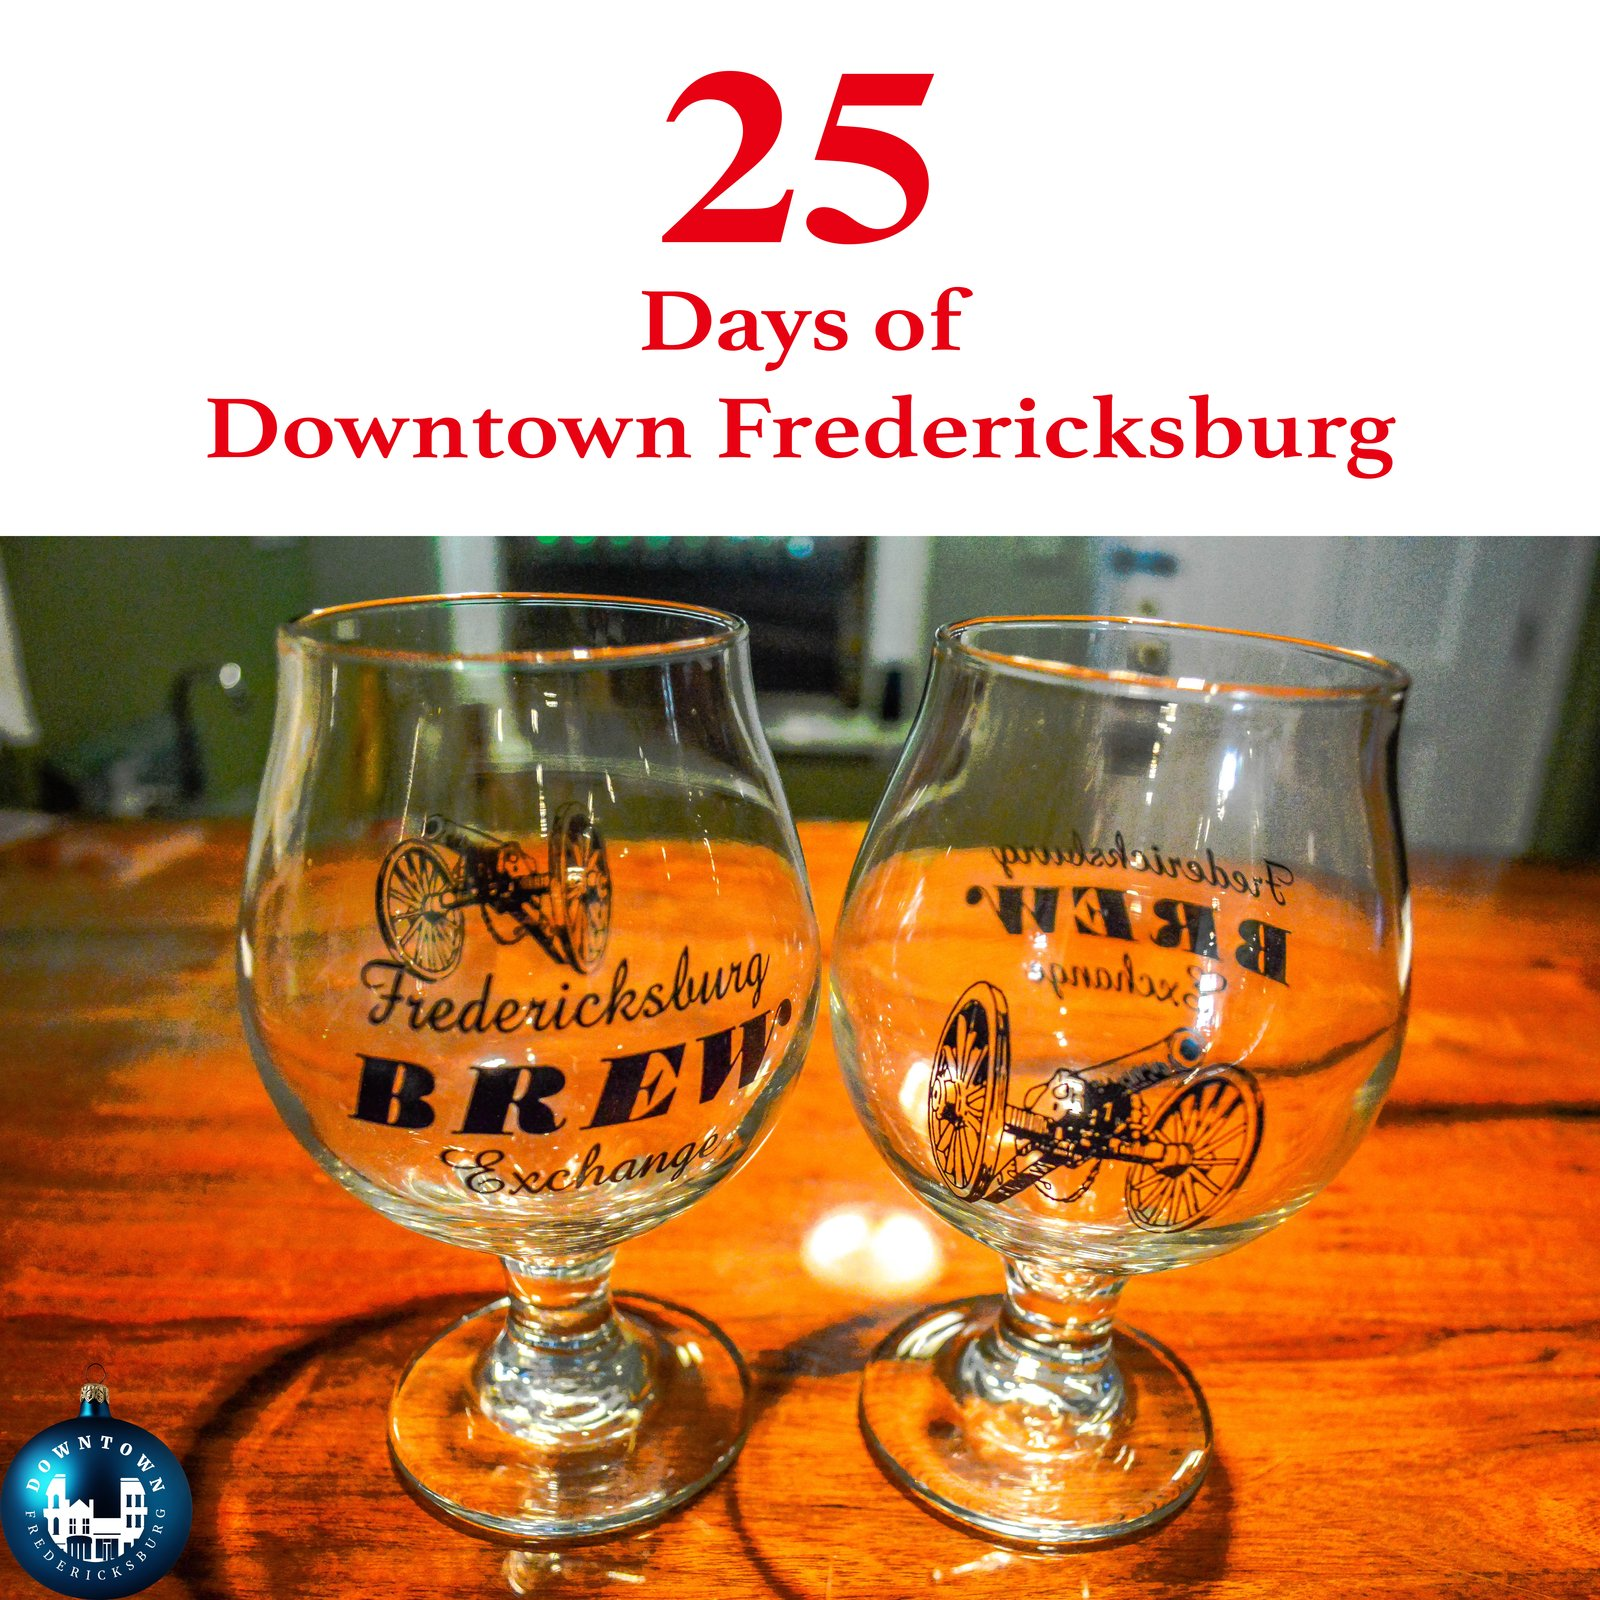 Gift Seven Merry Christmas and cheers to Fredericksburg Brew Exchange. www.facebook.com/DowntownFredericksburg  25 Days of Downtown Fredericksburg by Downtown Fredericksburg